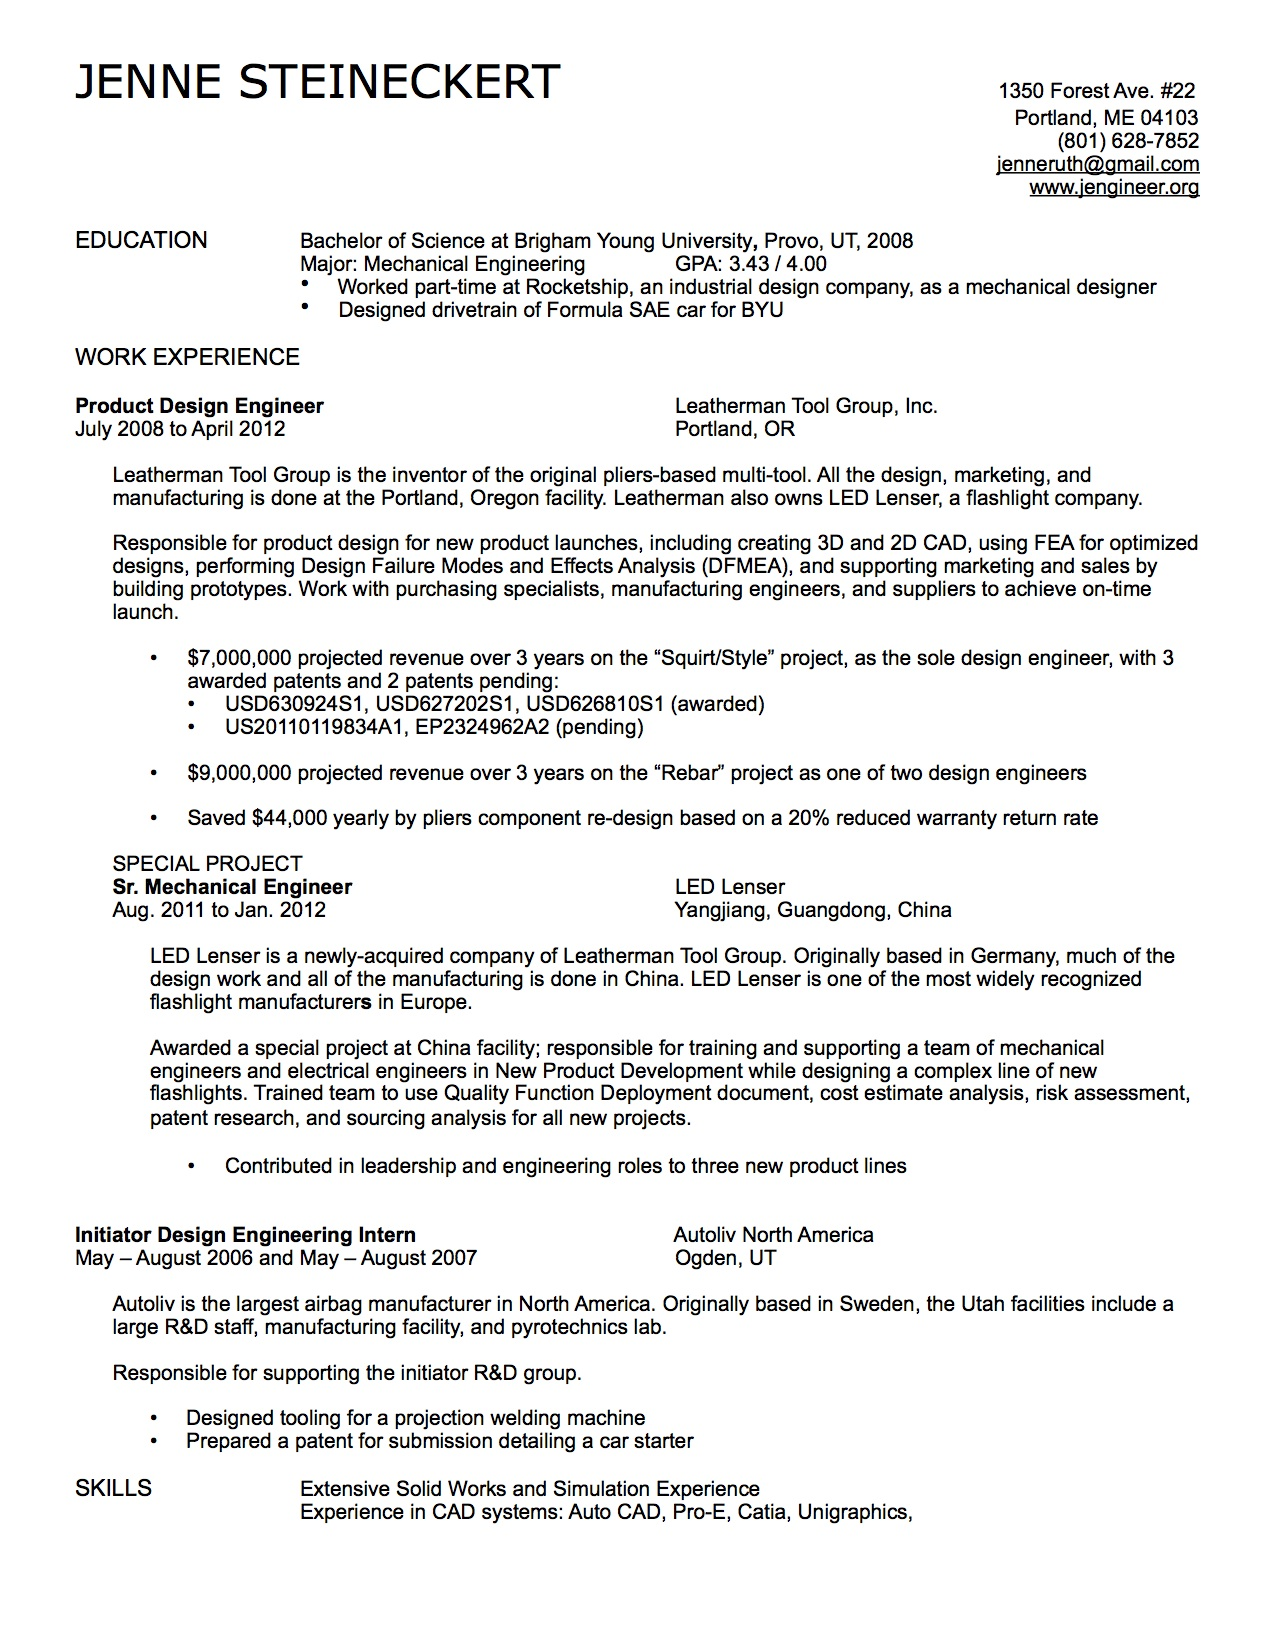 types of hobbies in resume professional resume cover letter sample types of hobbies in resume resume interests examples resume hobbies and interests hobbies for resume adrianhillsco